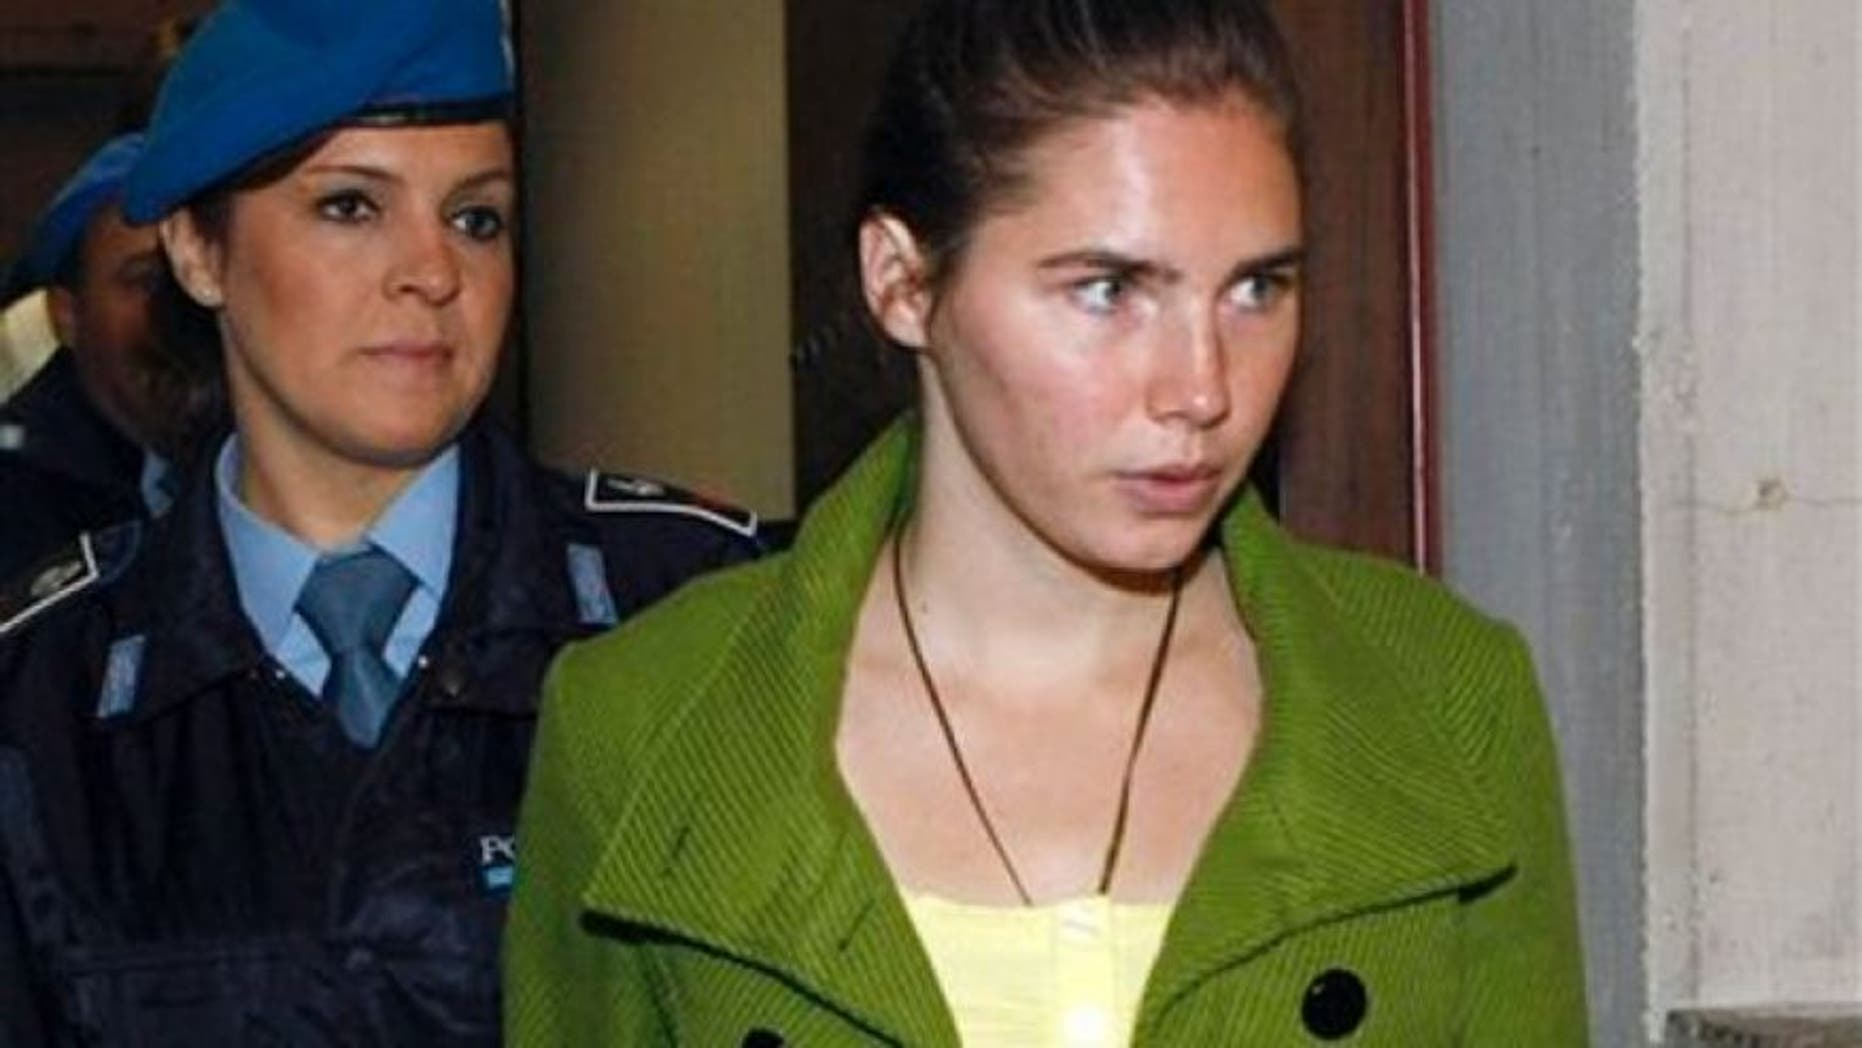 Dec. 4, 2009: Amanda Knox is accompanied by a penitentiary police officer prior to a final hearing at the court in Perugia, Italy. Knox was found guilty of murdering her British roommate Meredith Kercher.